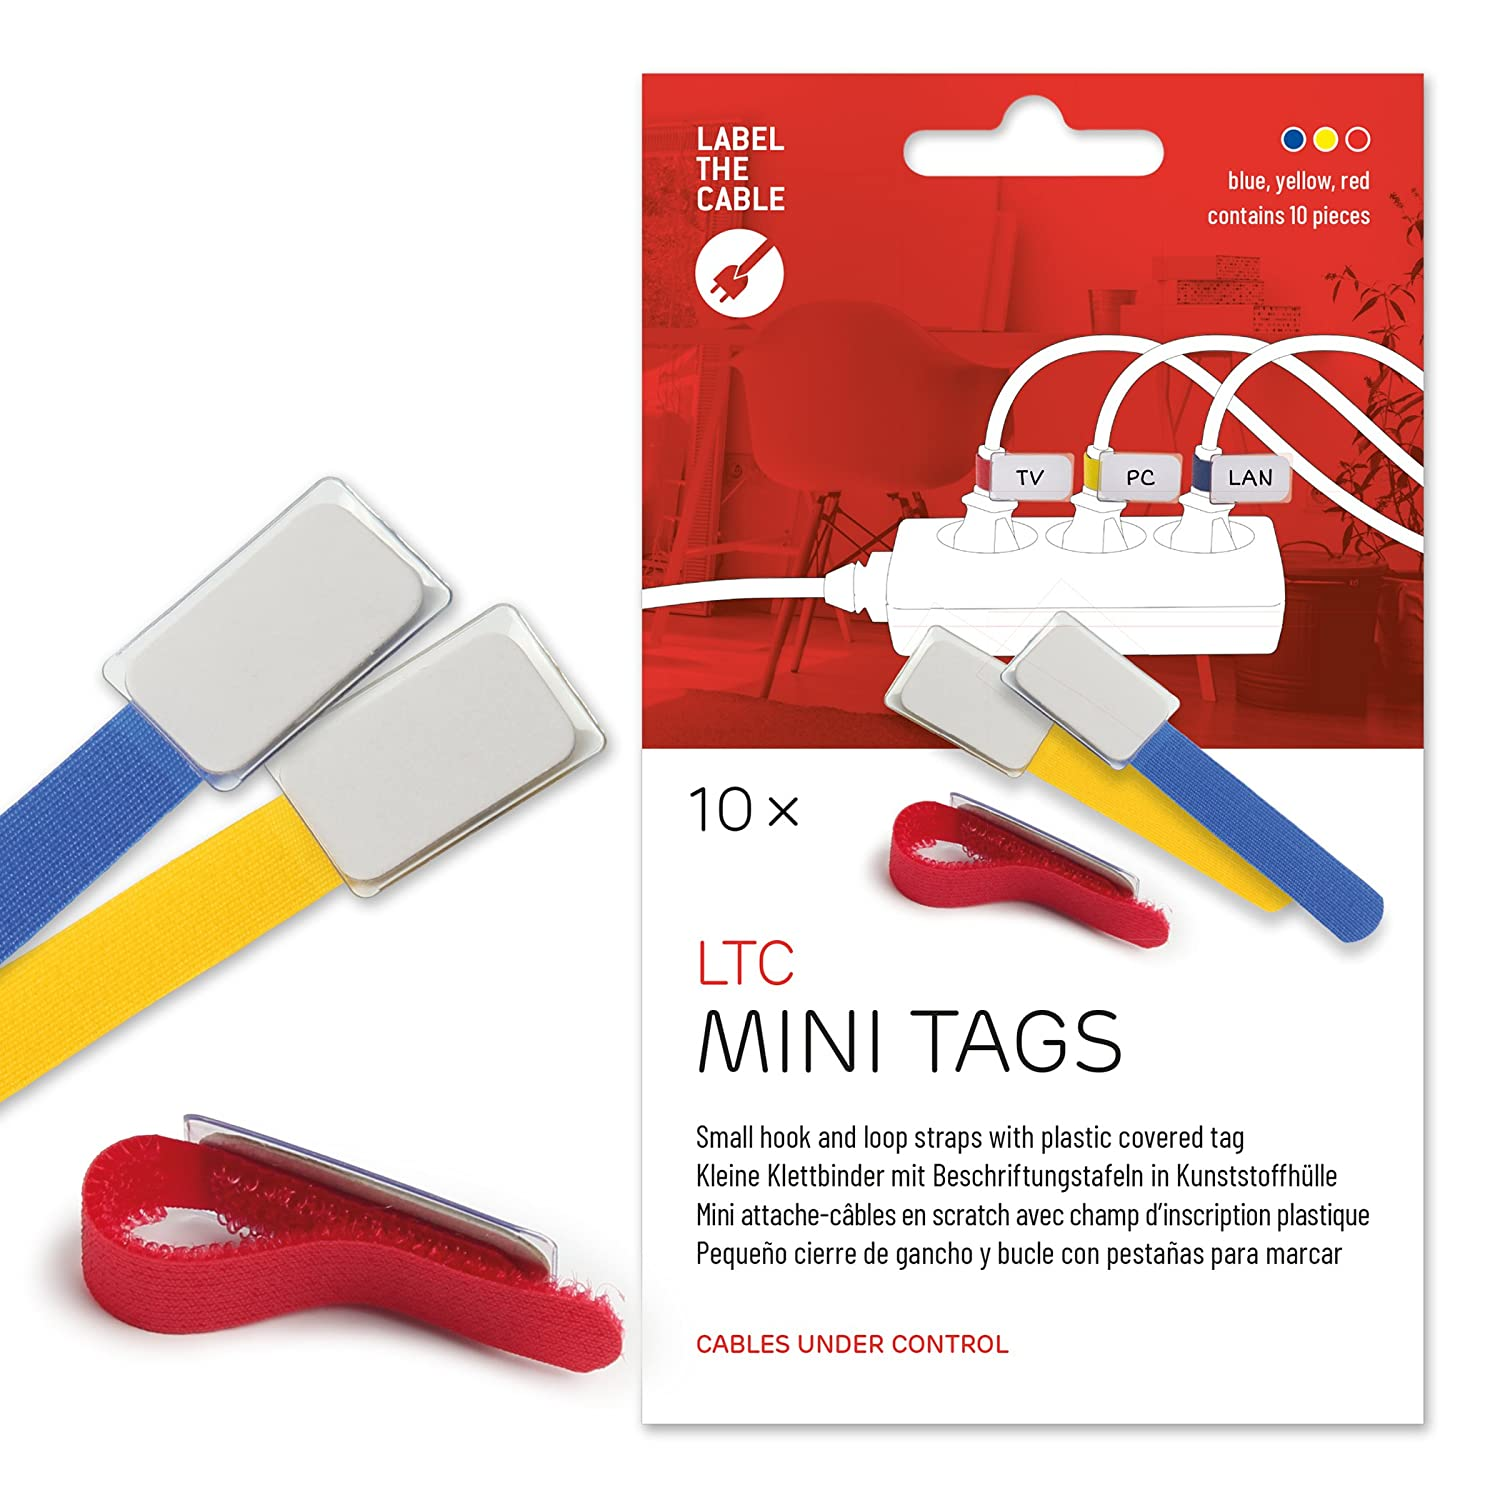 ae5ad0758 Label-the-cable Cable Management Ties with Labels, Re-Useable Hook and Loop  cable tags/ Cable Tidy/ Cable Labels/ Wire Labels/ Cord Organizer/ LTC MINI  TAGS ...